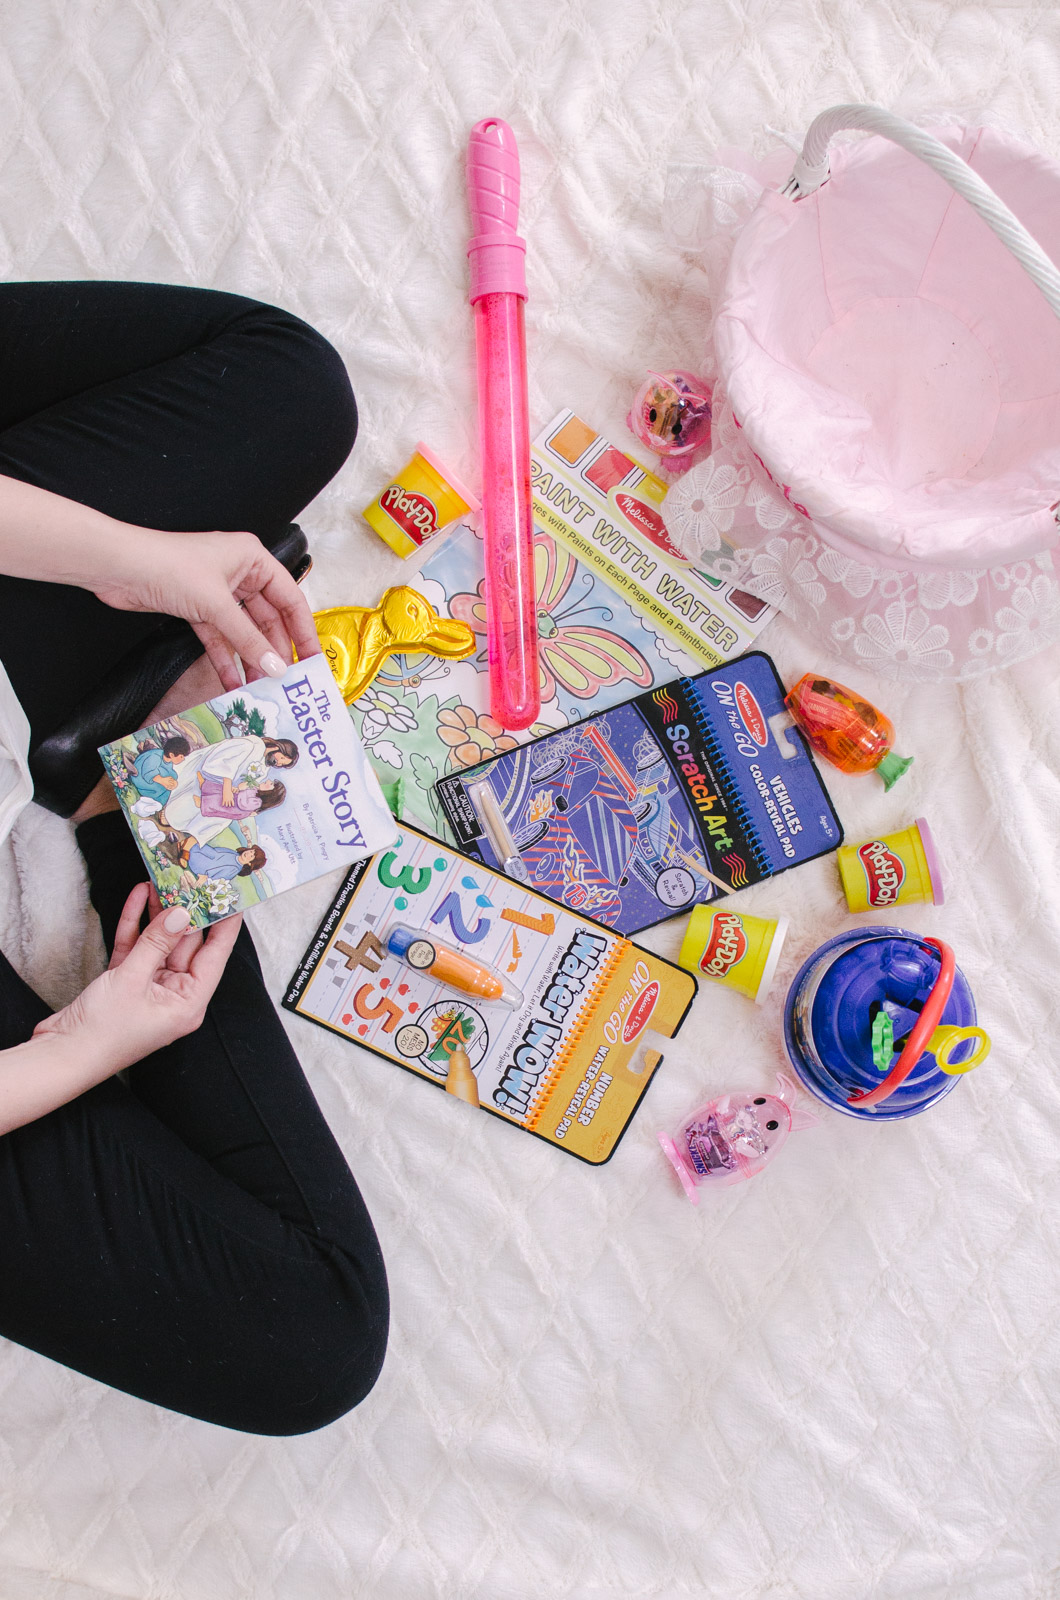 best toddler easter basket ideas - cute easter basket ideas available on amazon prime! Gotta love 2-day shipping, right?! | bylaurenm.com